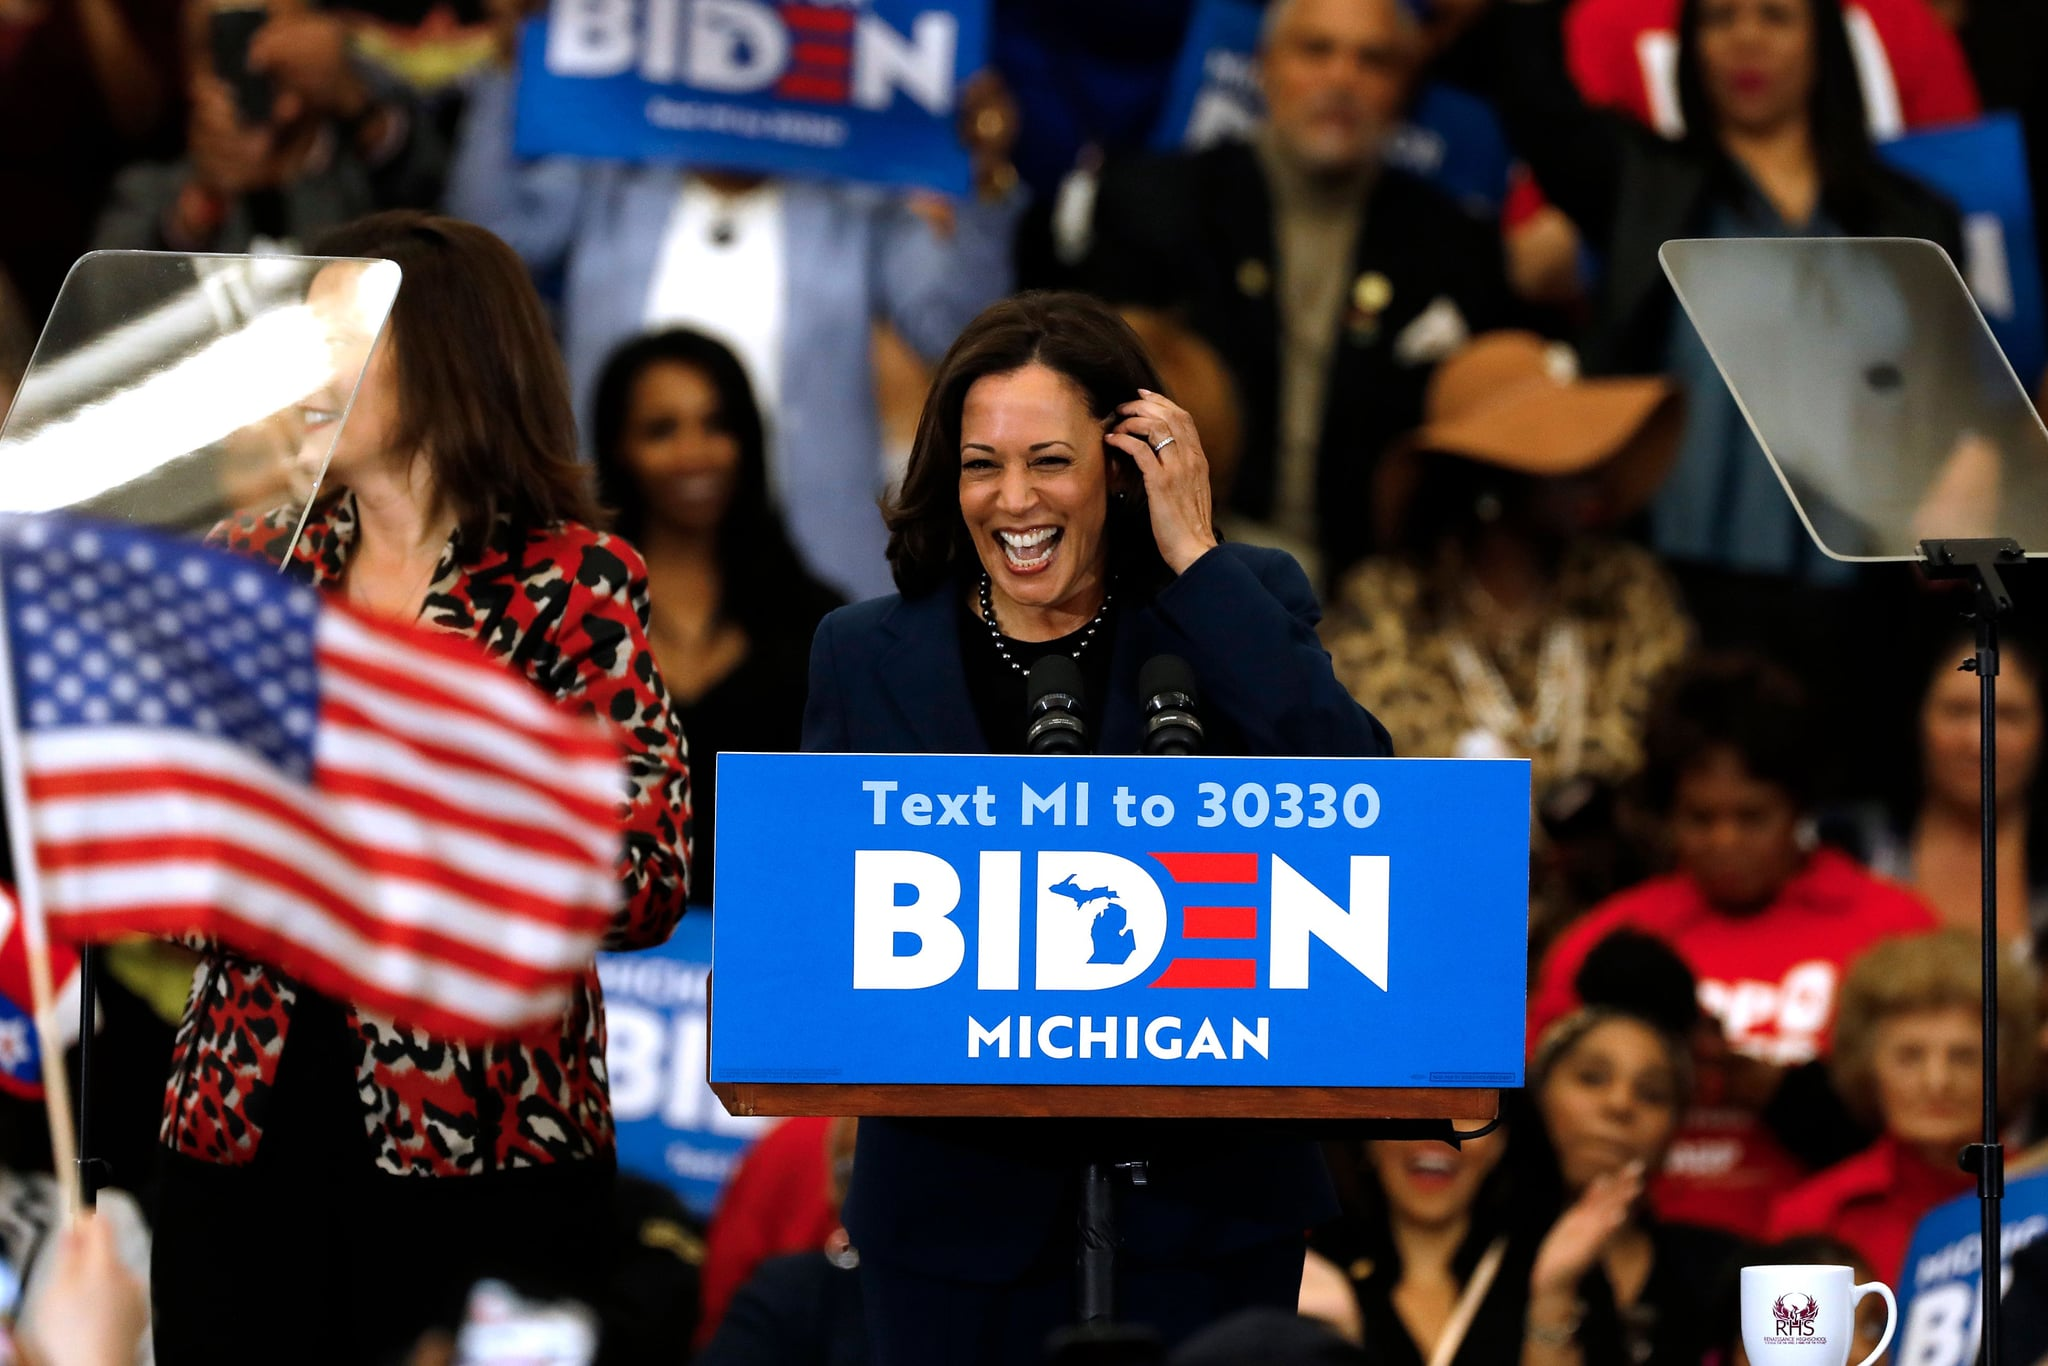 California Senator Kamala Harris endorses Democratic presidential candidate former Vice President Joe Biden as she speaks to supporters during a campaign rally at Renaissance High School in Detroit, Michigan on March 9, 2020. (Photo by JEFF KOWALSKY / AFP) (Photo by JEFF KOWALSKY/AFP via Getty Images)